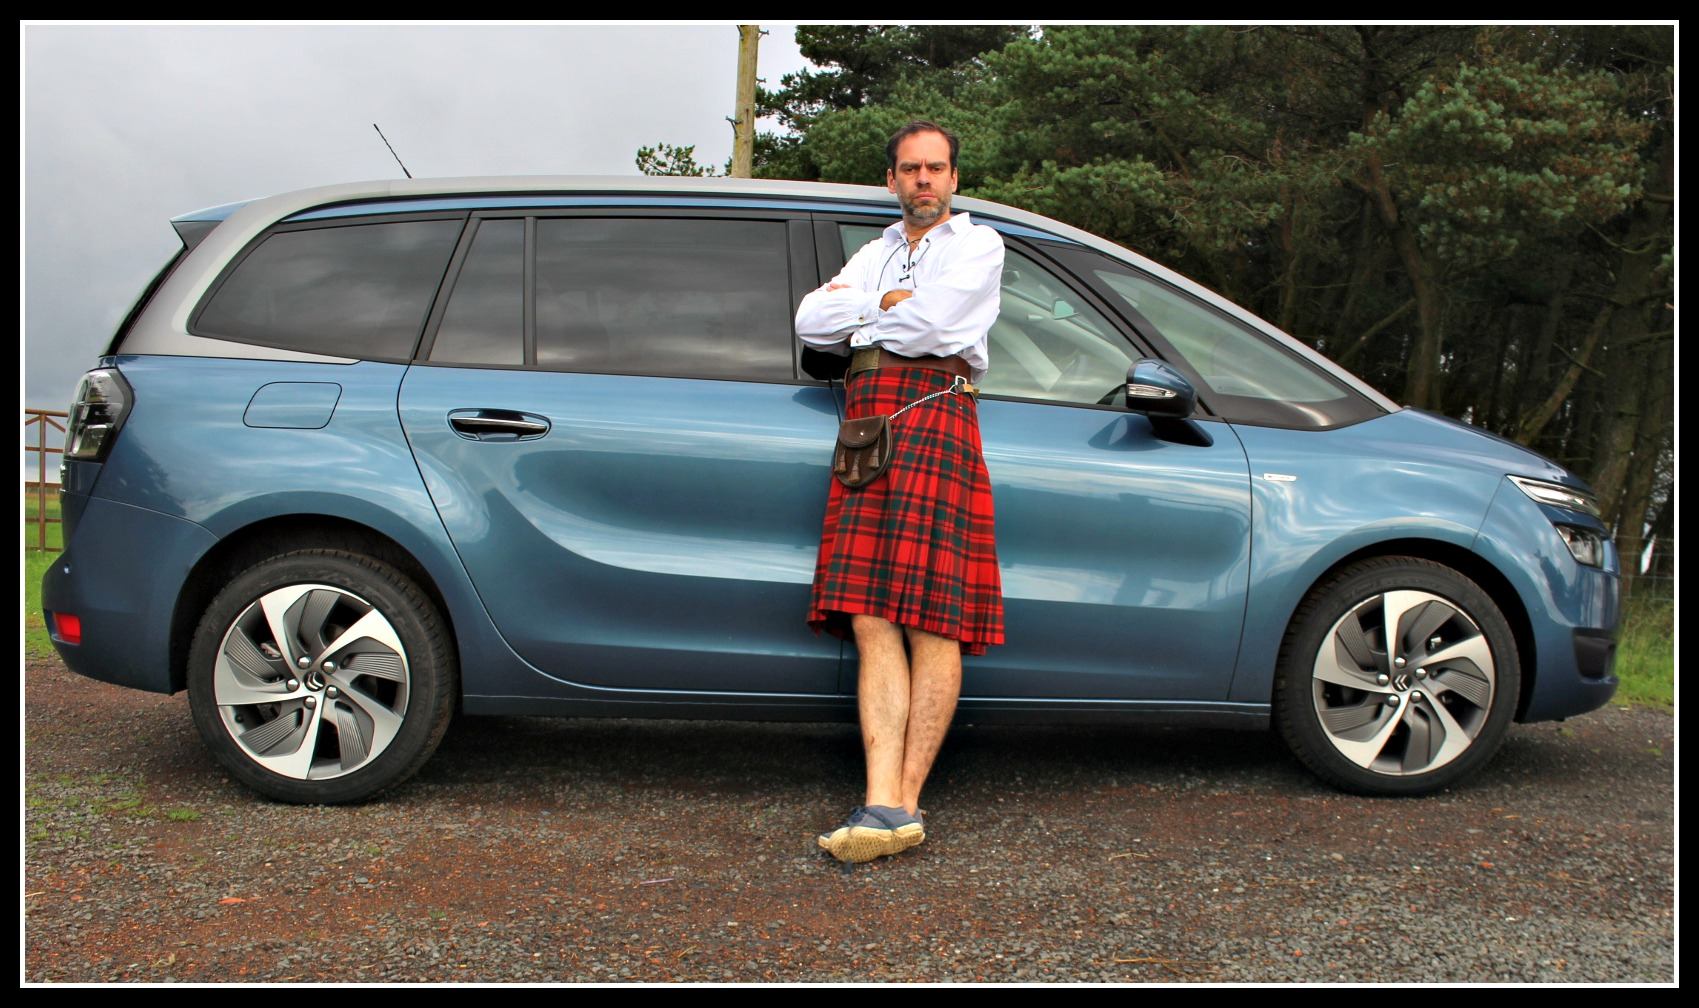 Family road trip to Scotland in a Citroën Grand C4 Picasso